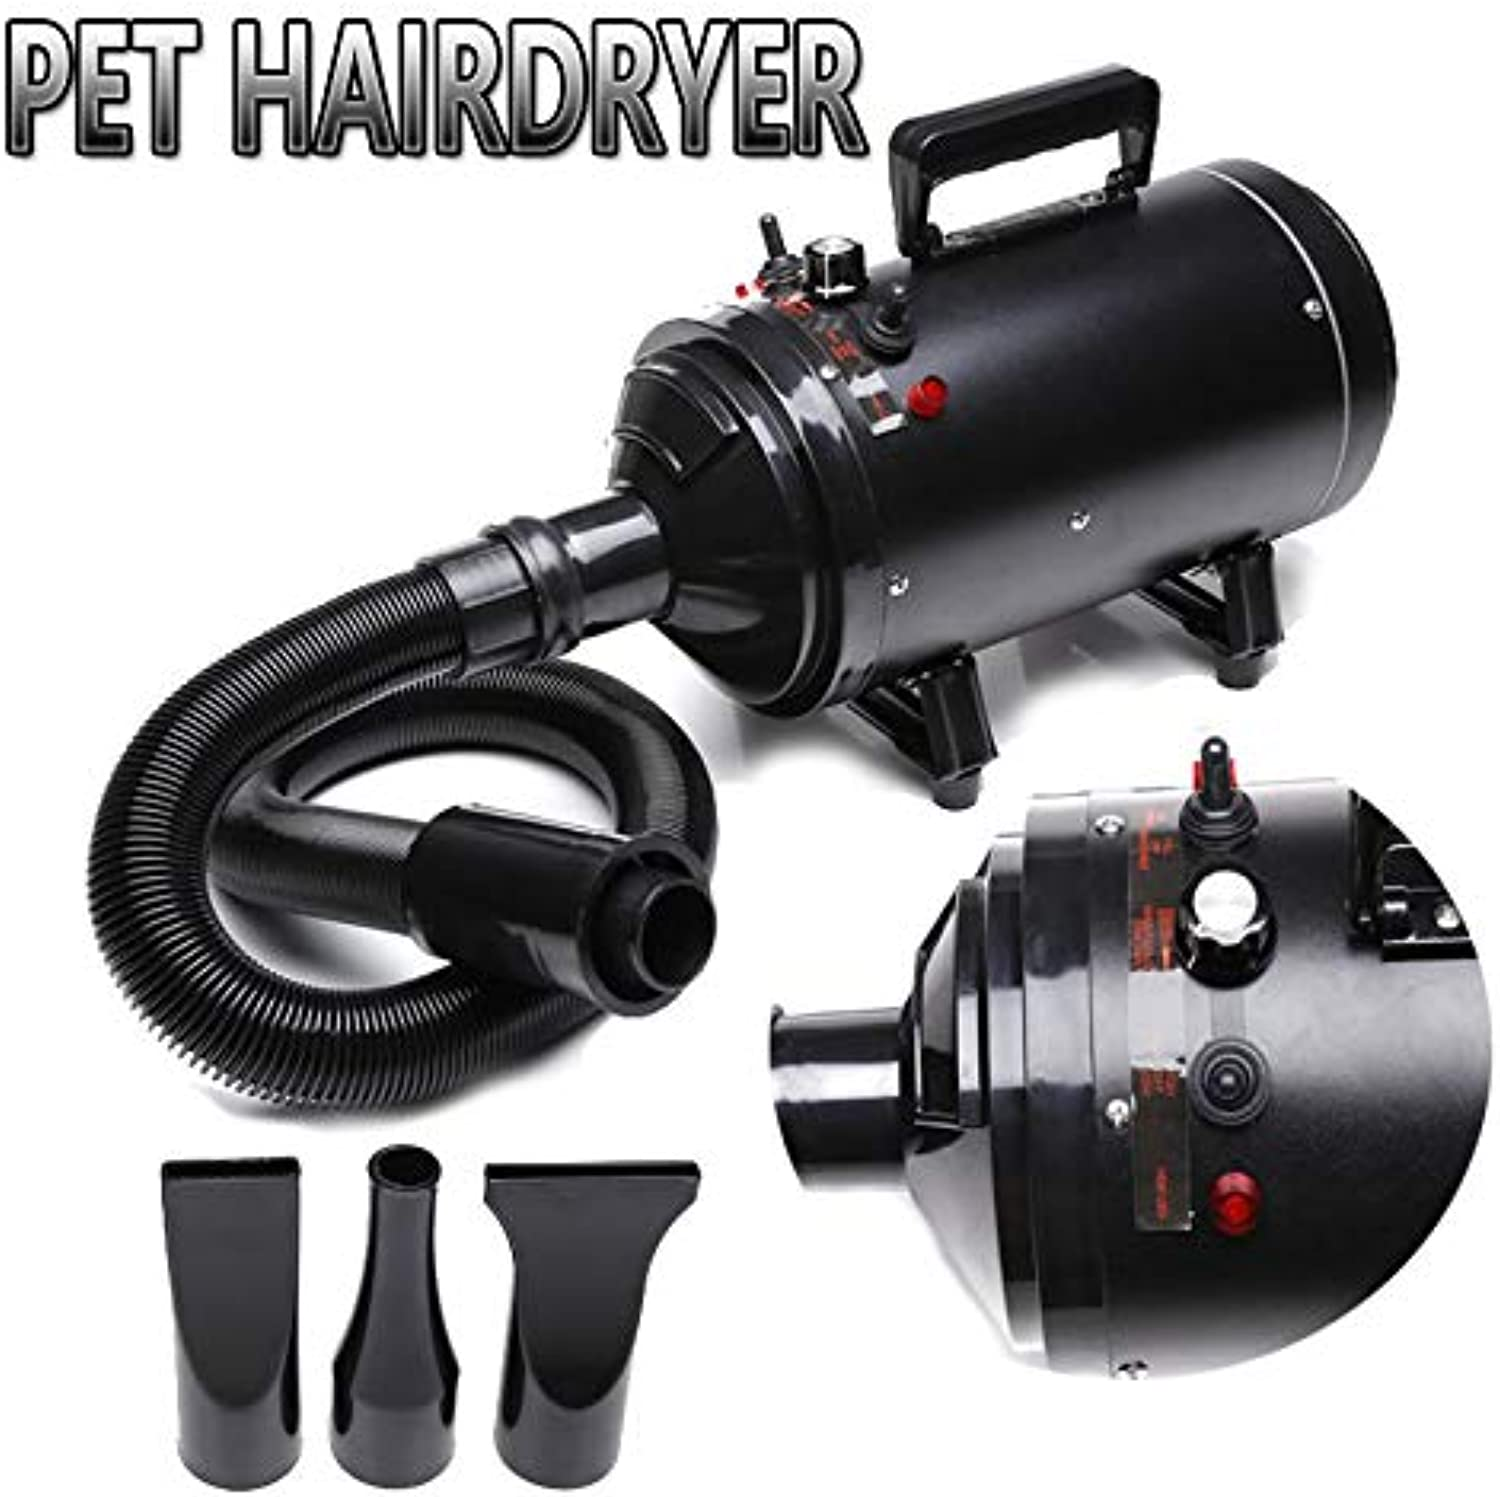 AutoFu Variable Speed Pet Grooming Hairdryer 2800W High Velocity Blaster Fur Blower Stepless Speed Temperature and Flexible Hose for dogs and cats (Black)